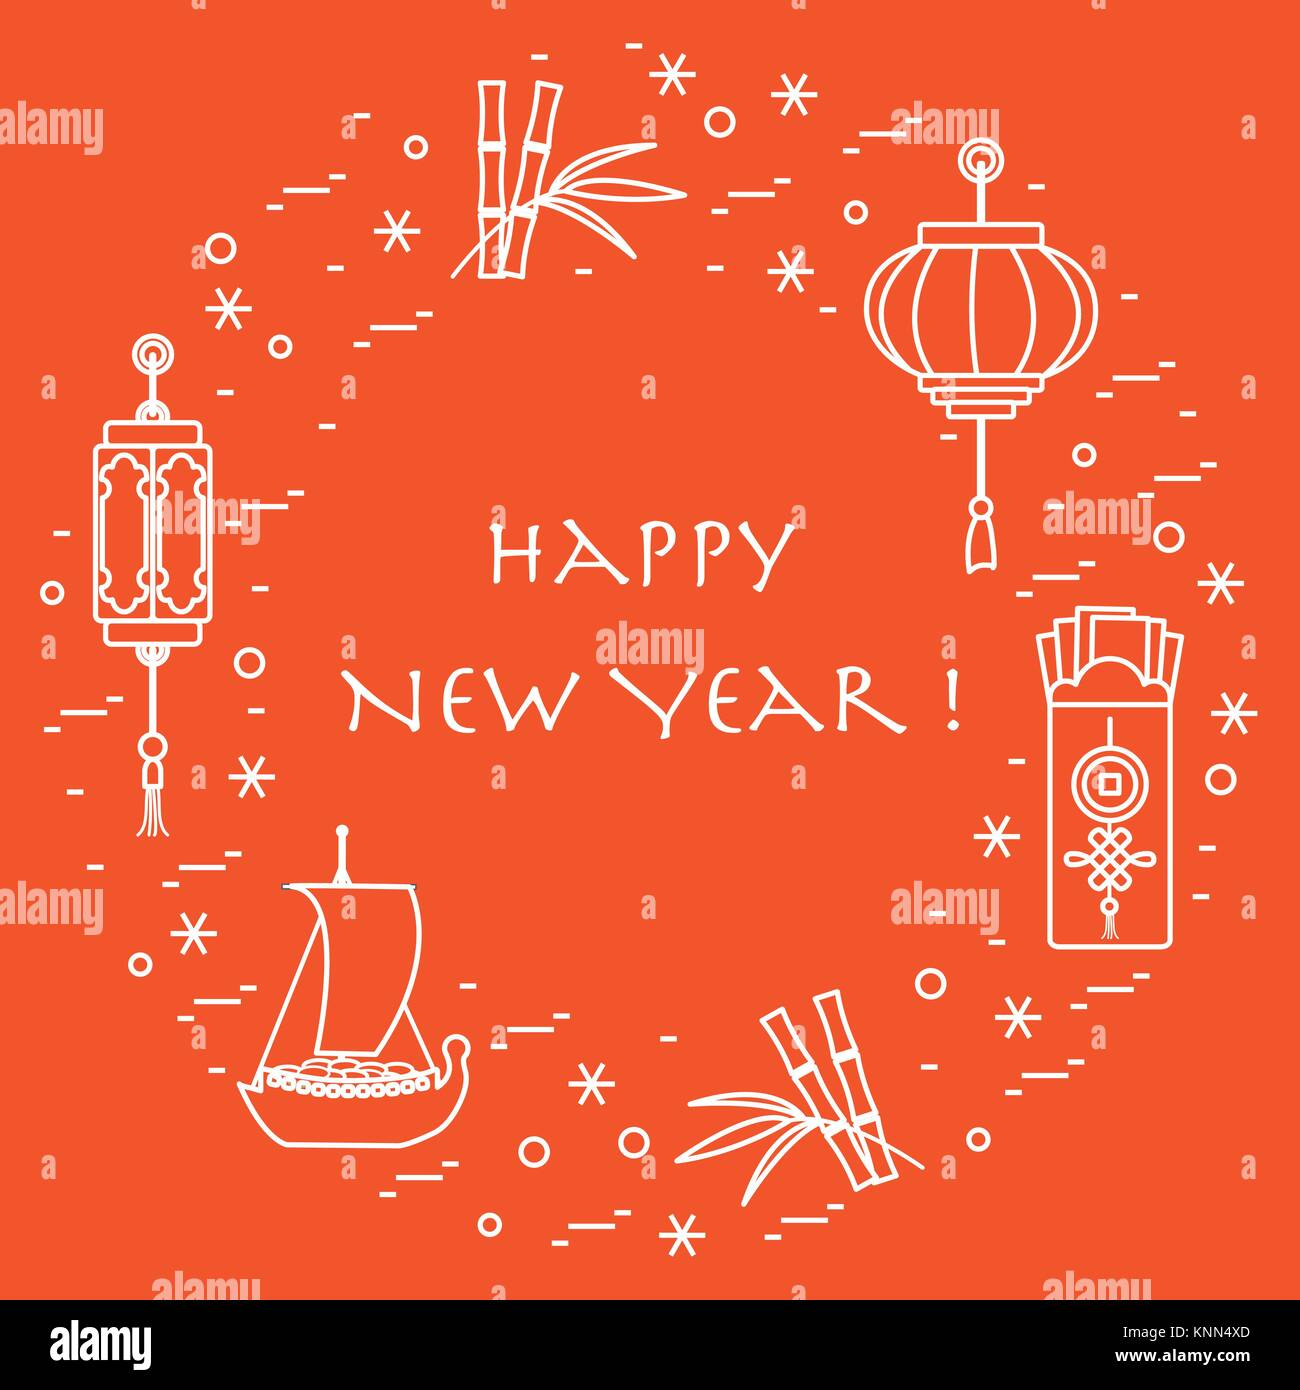 Chinese Good Luck Symbols New Year Stock Photos Chinese Good Luck